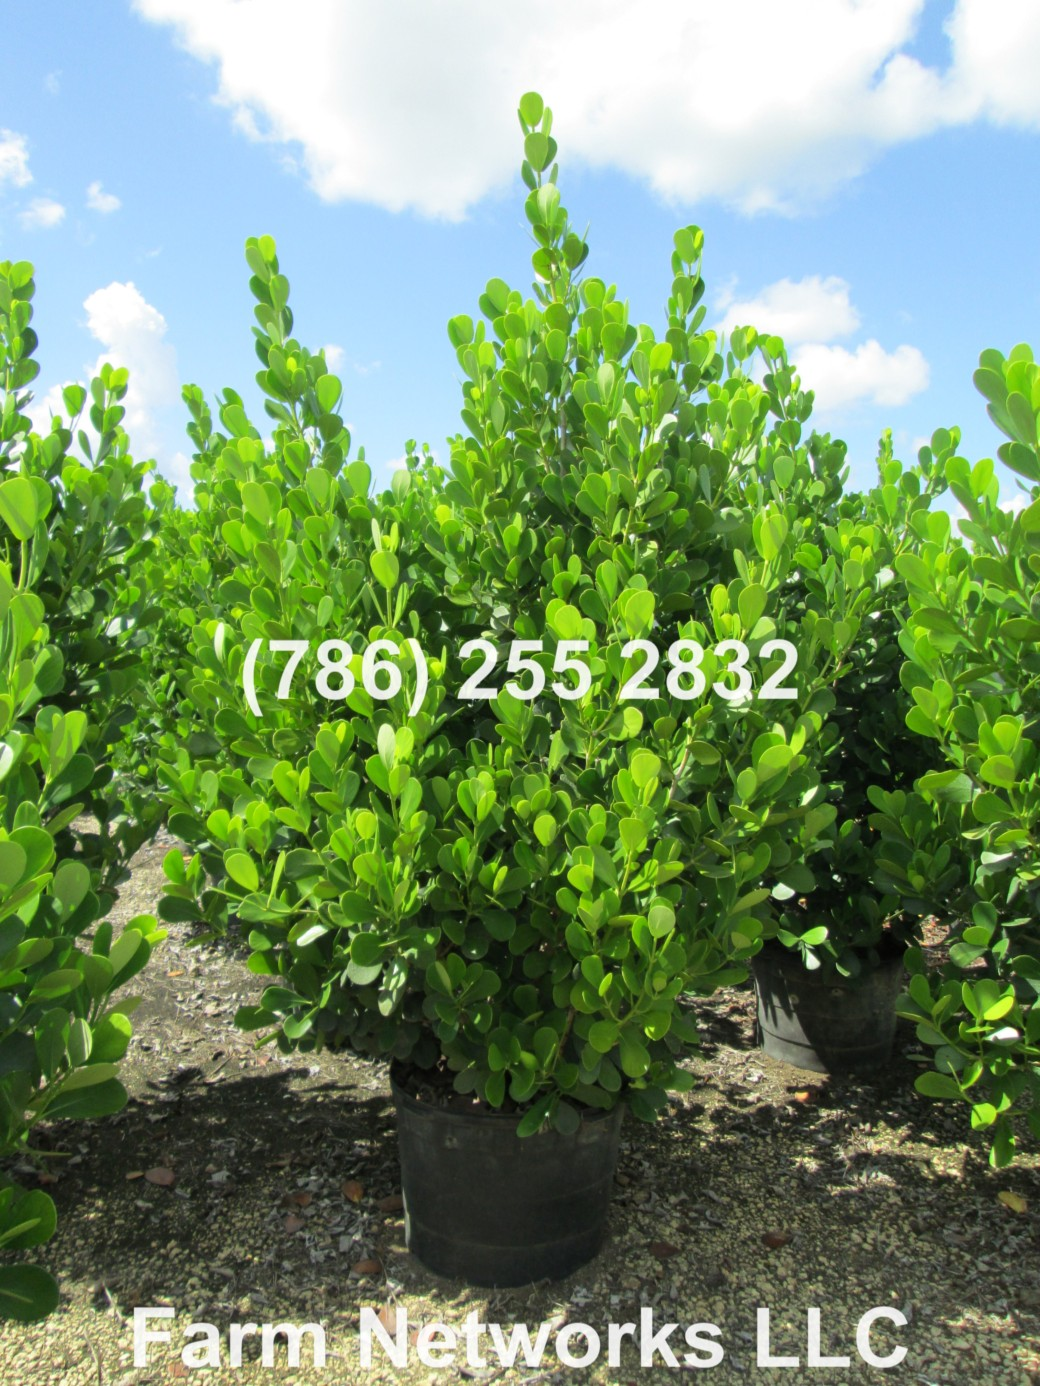 Clusia Hedge Growers